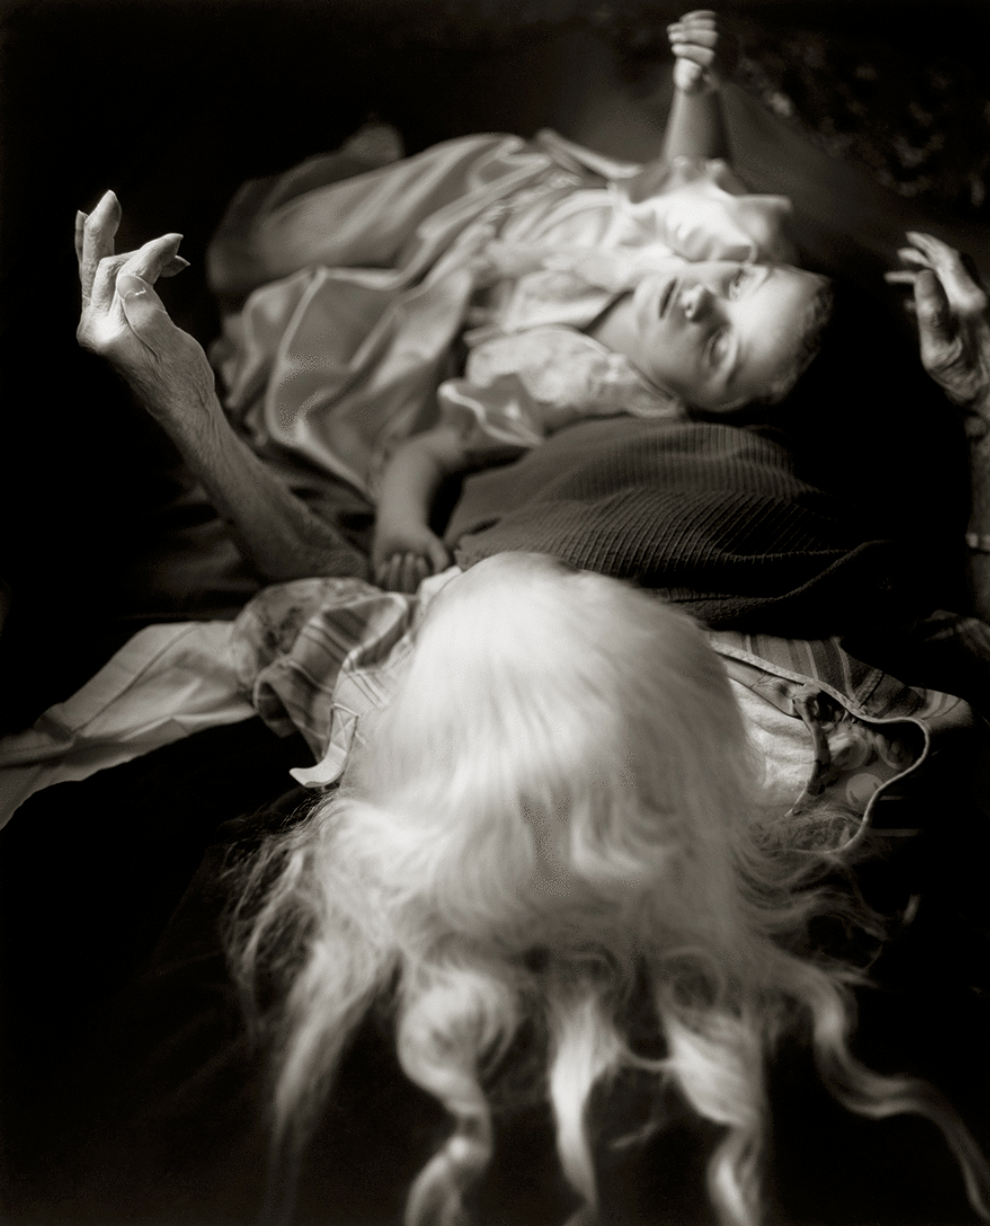 The Two Virginias #4 1991 Sally Mann Gelatin silver print. Private collection. © Sally Mann